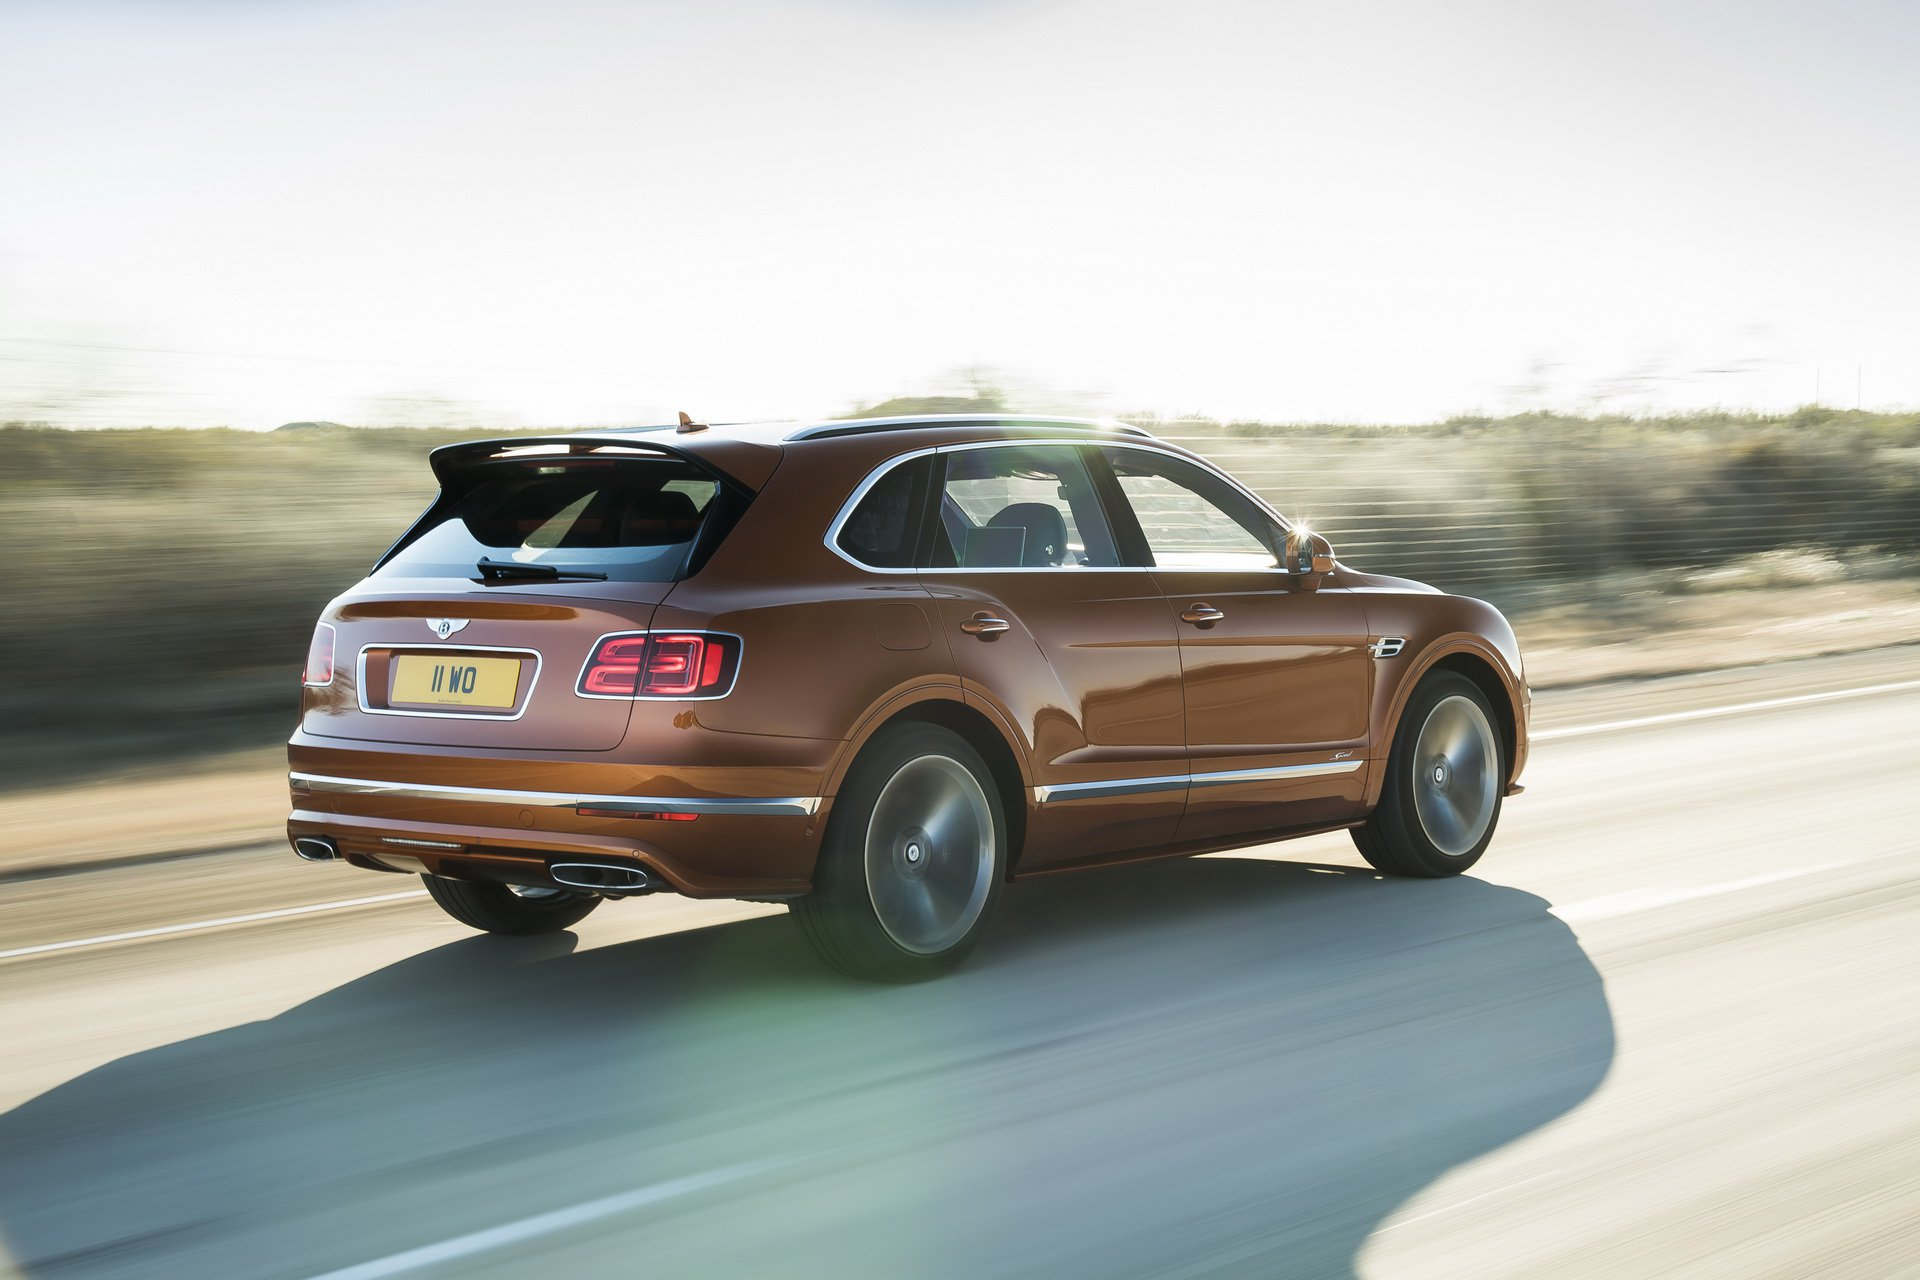 2020 Bentley Bentayga Speed rear view